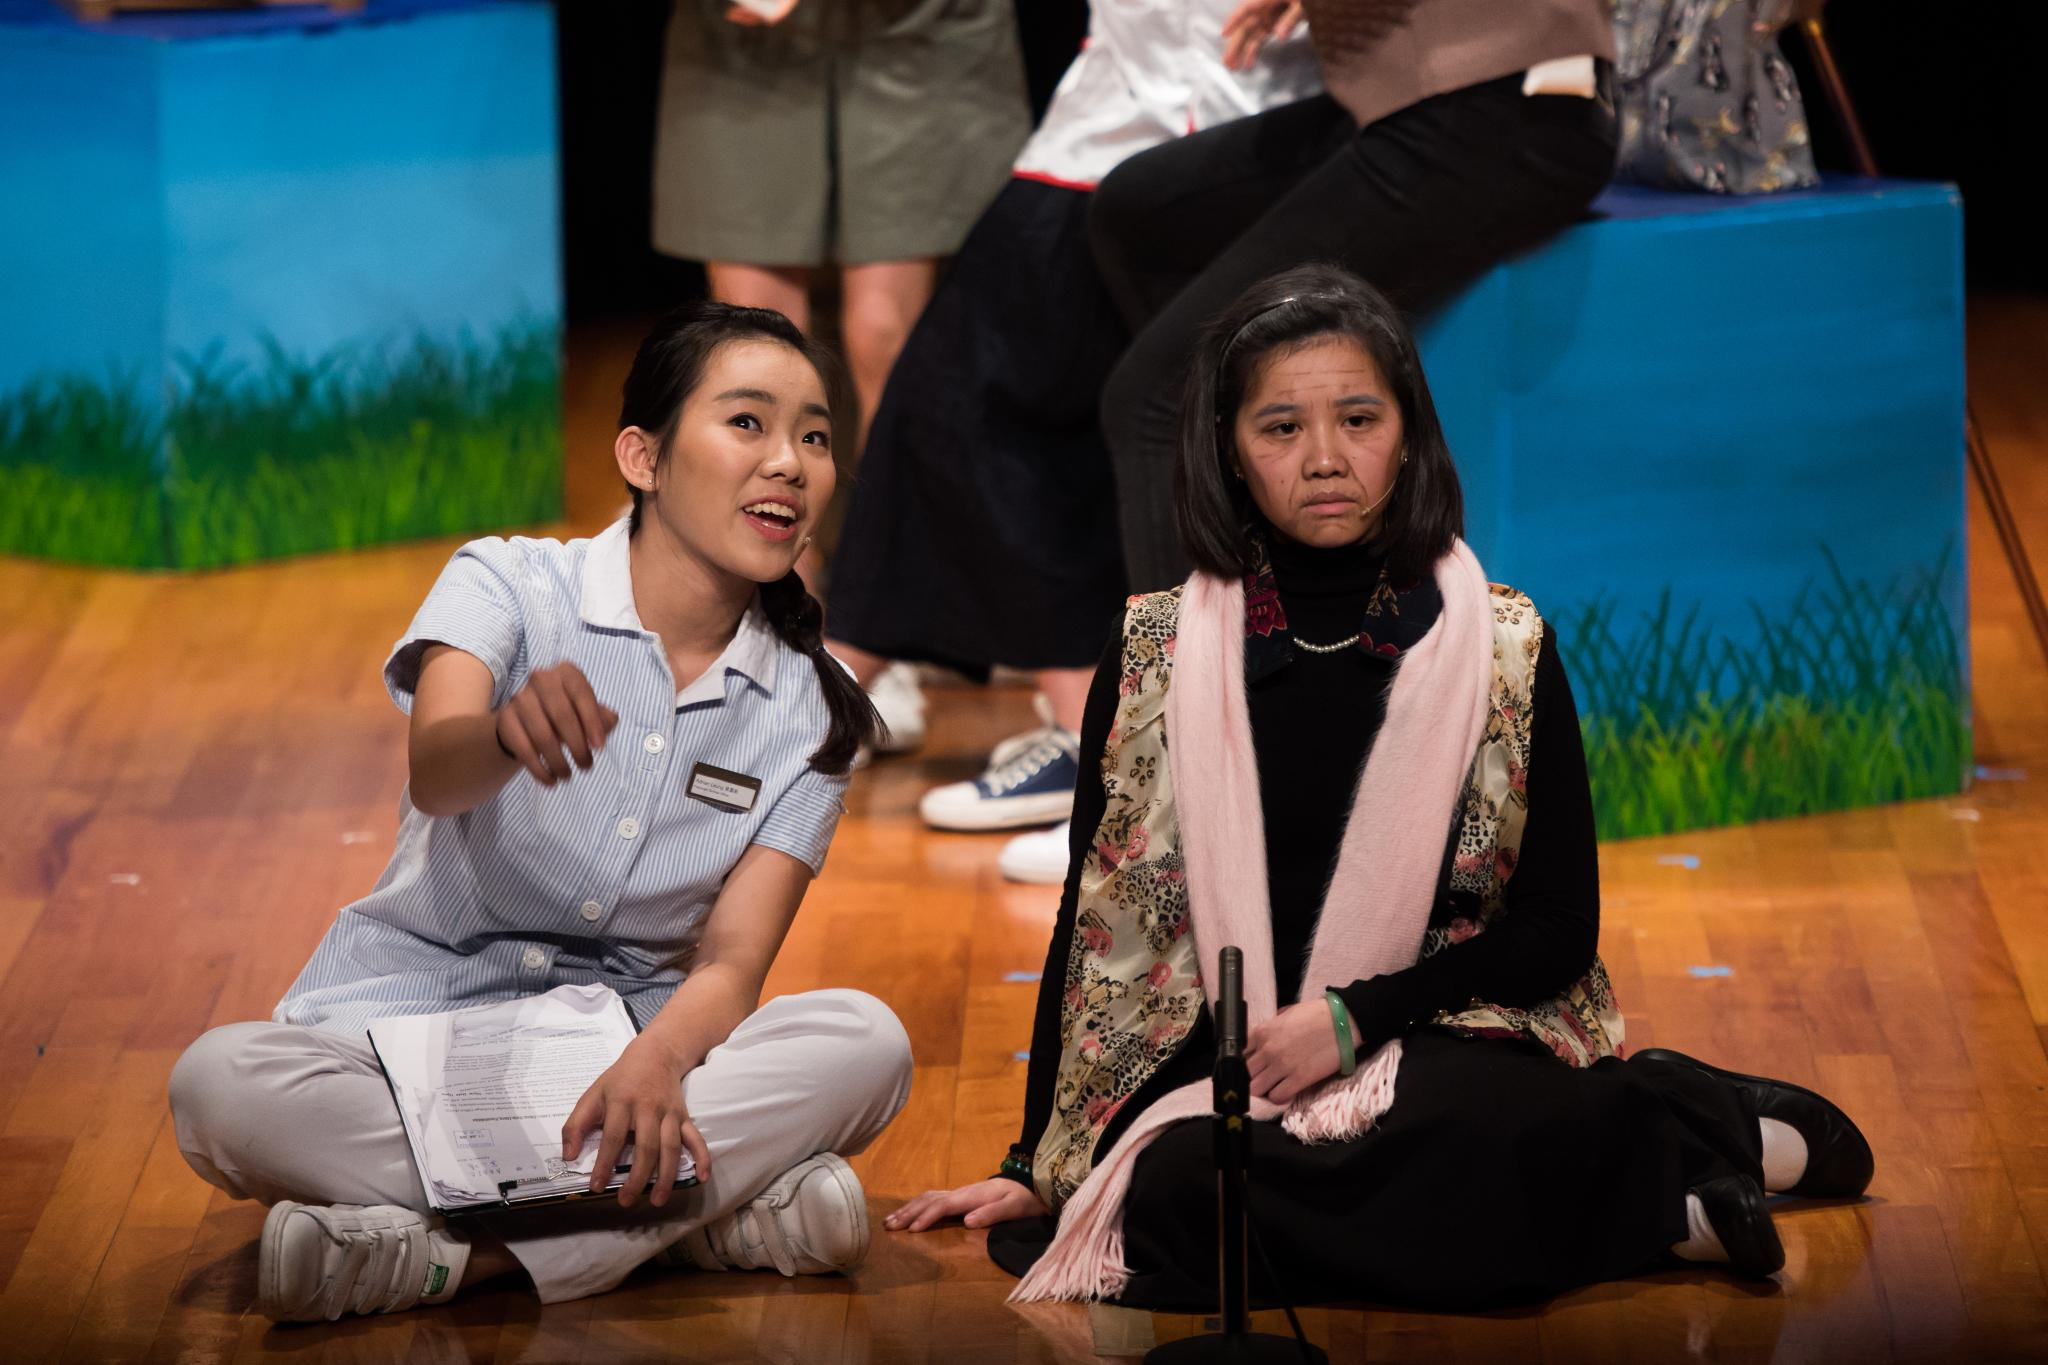 Our Drama Team had great performances on conveying positive messages of cross-generation harmony.